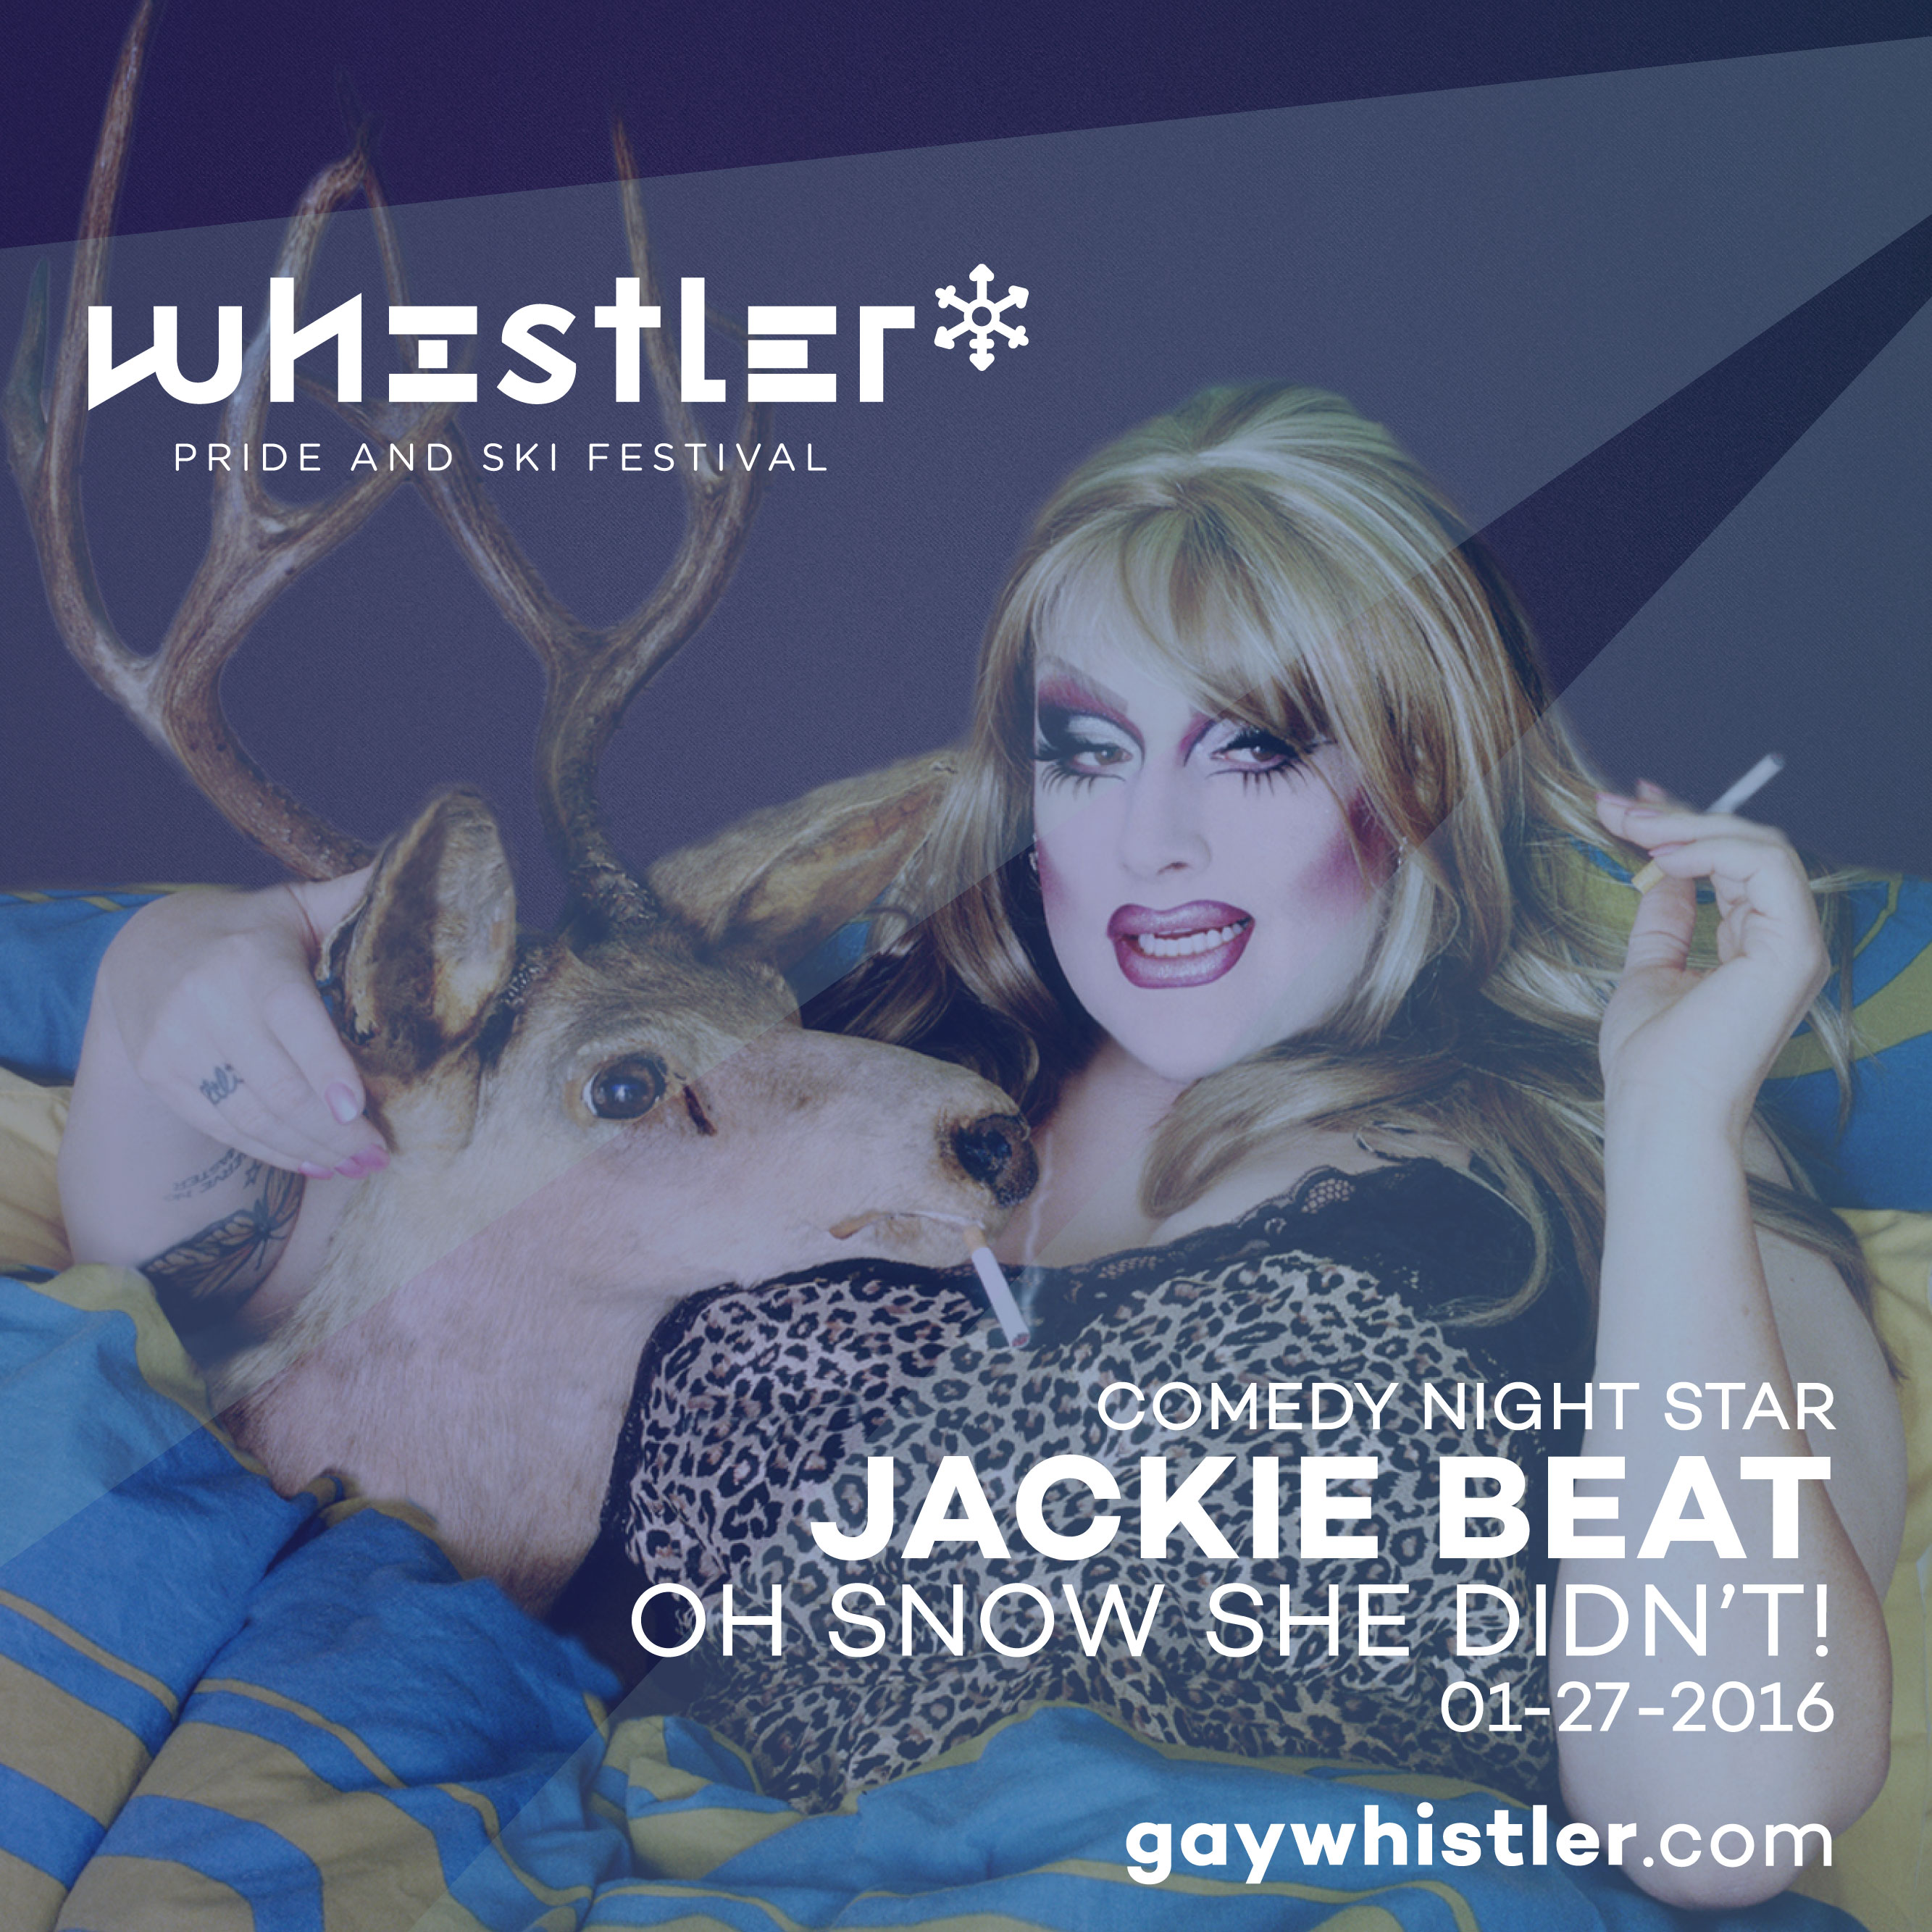 Jacki Beat in OH SNOW SHE DIDN'T at Whistler Pride and Ski Festival